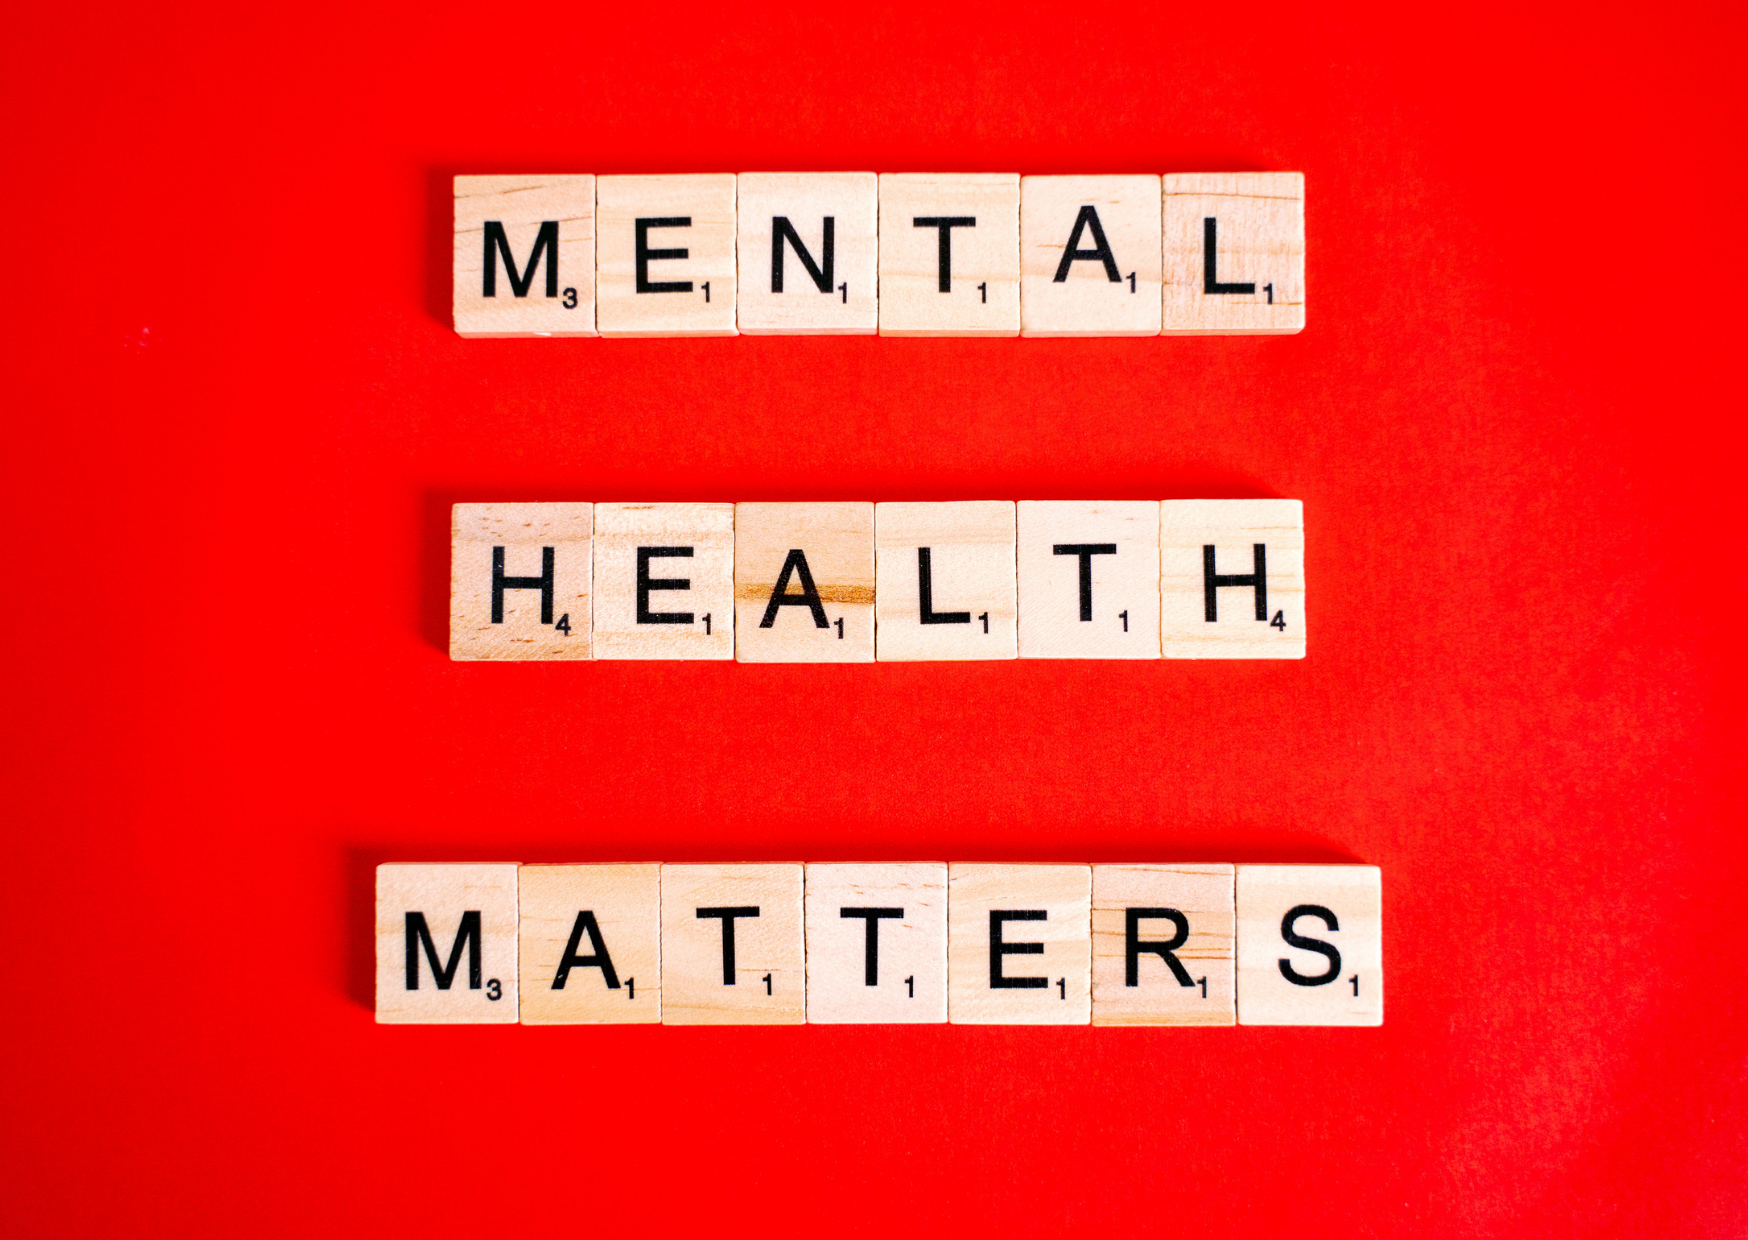 Let Us Make Mental Health Our Priority